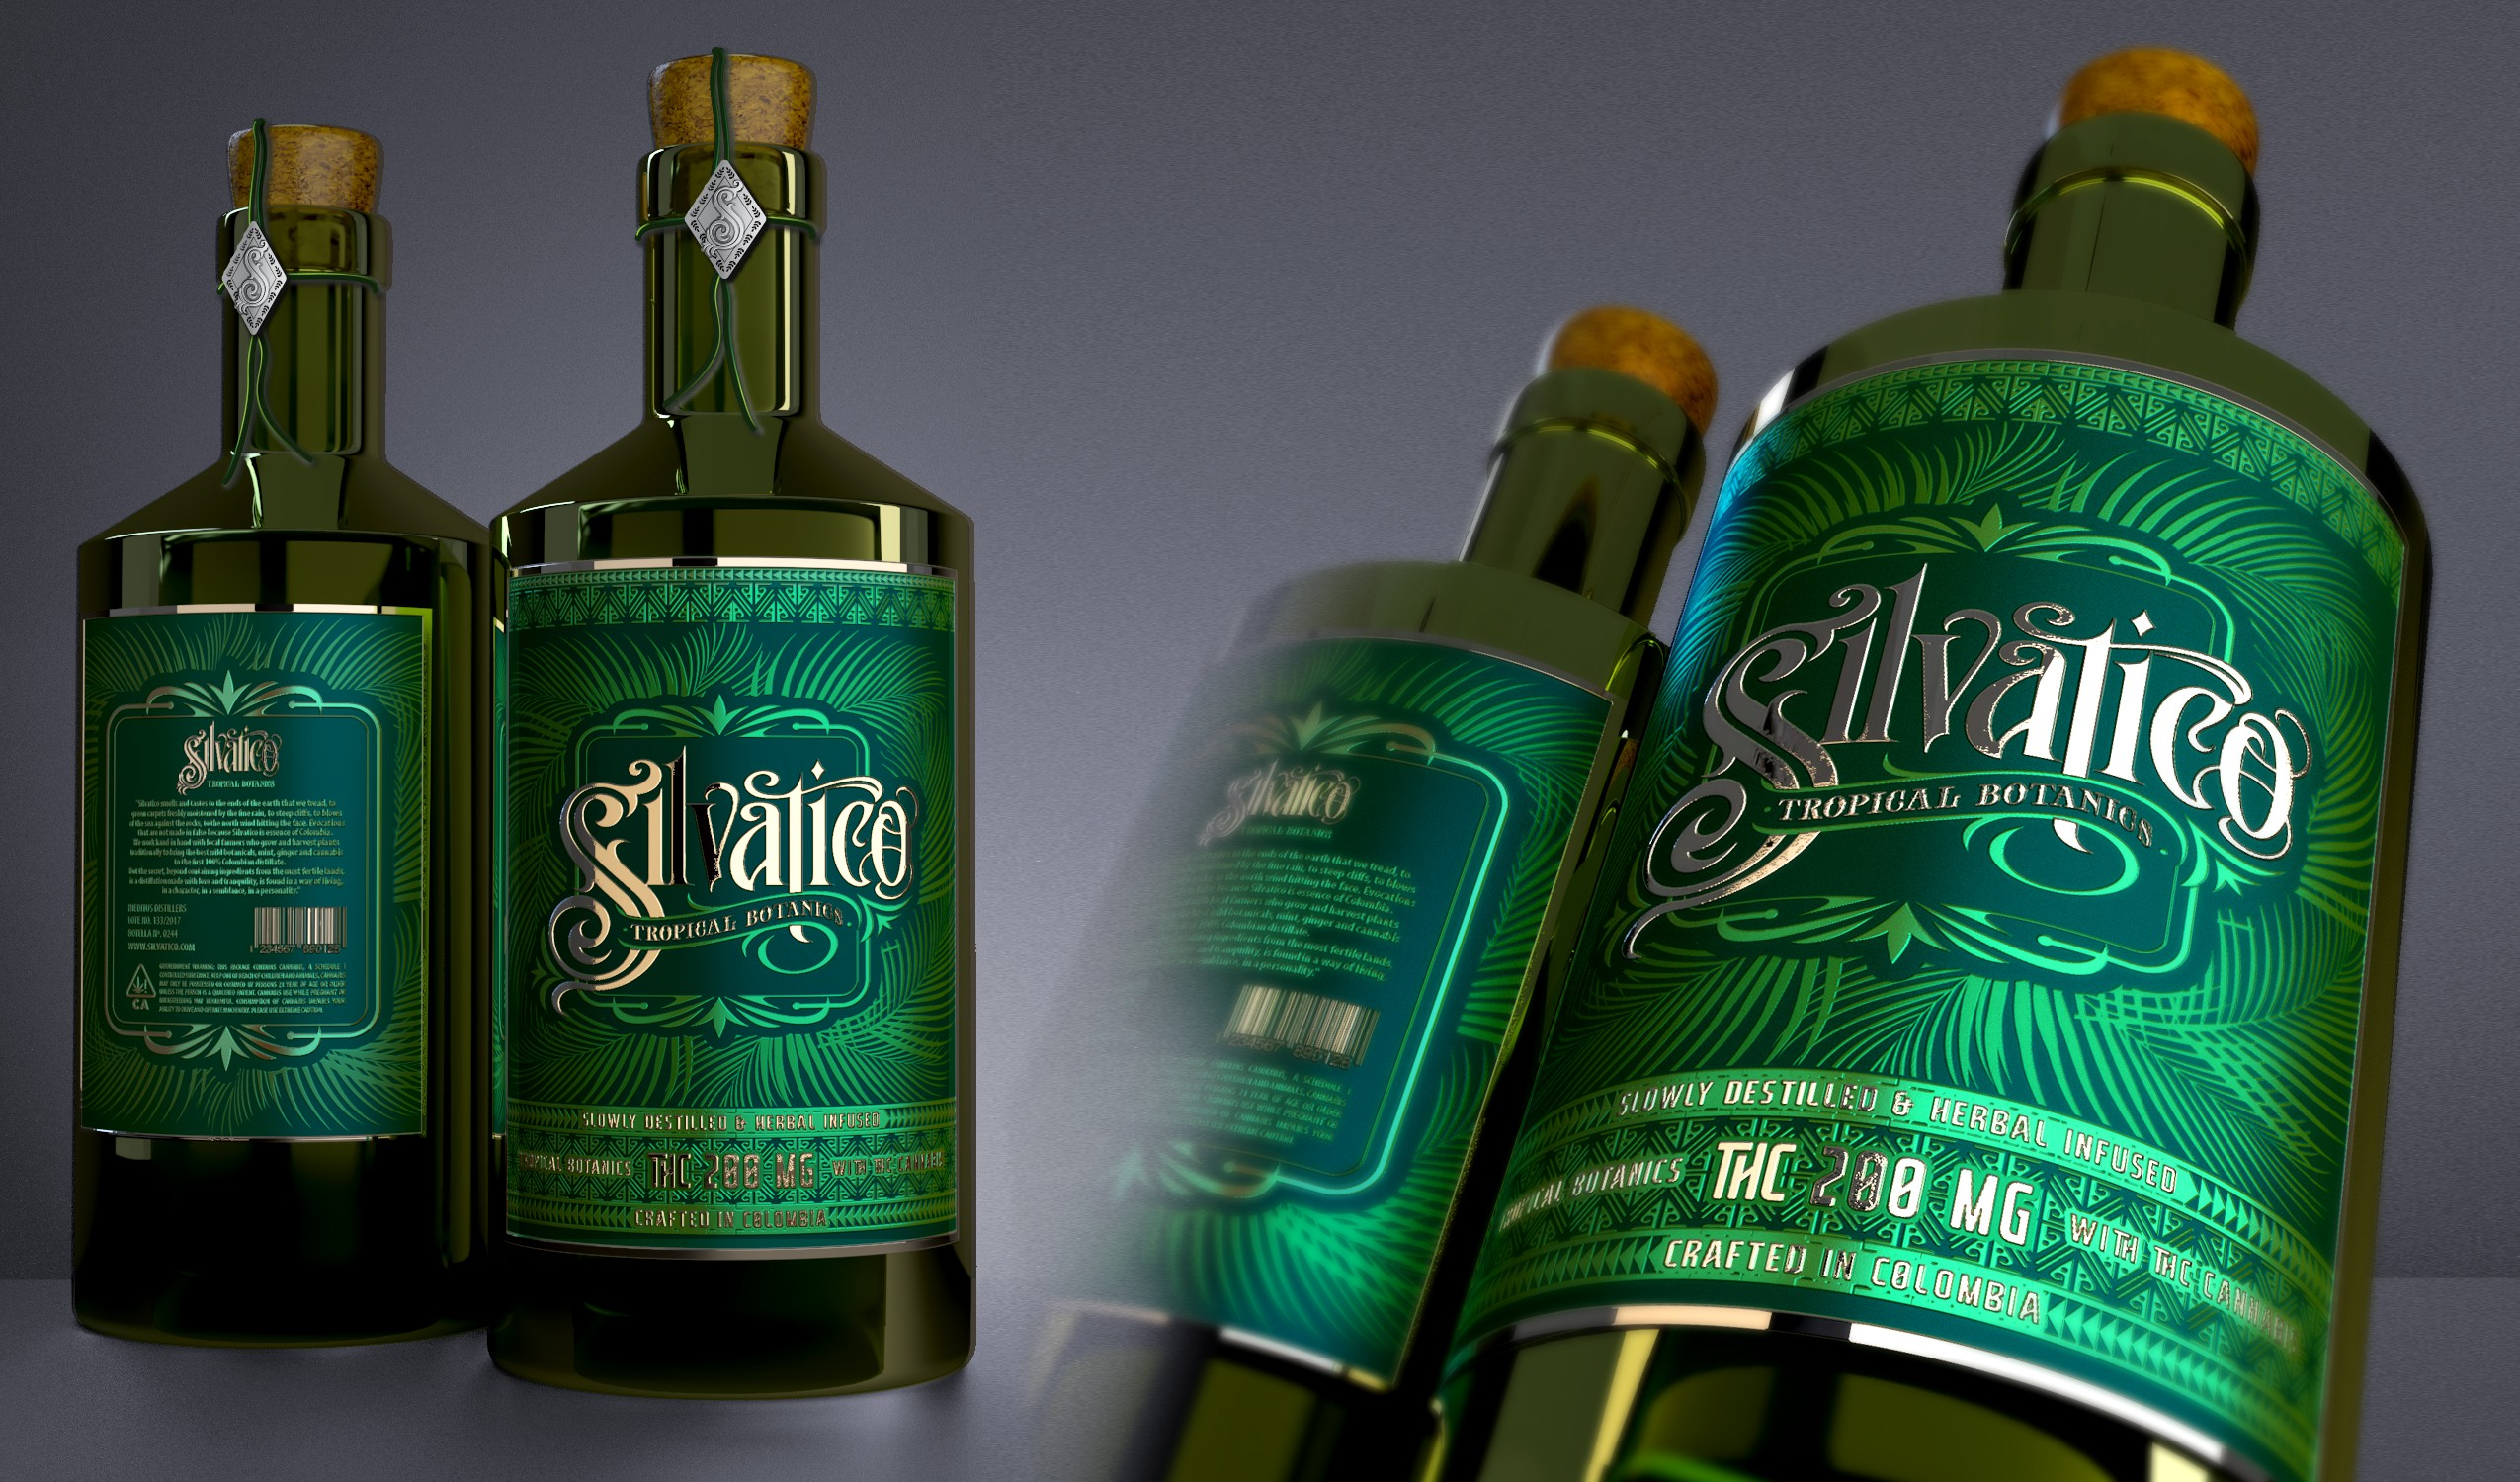 Redesign Label Silvativo and Packaging